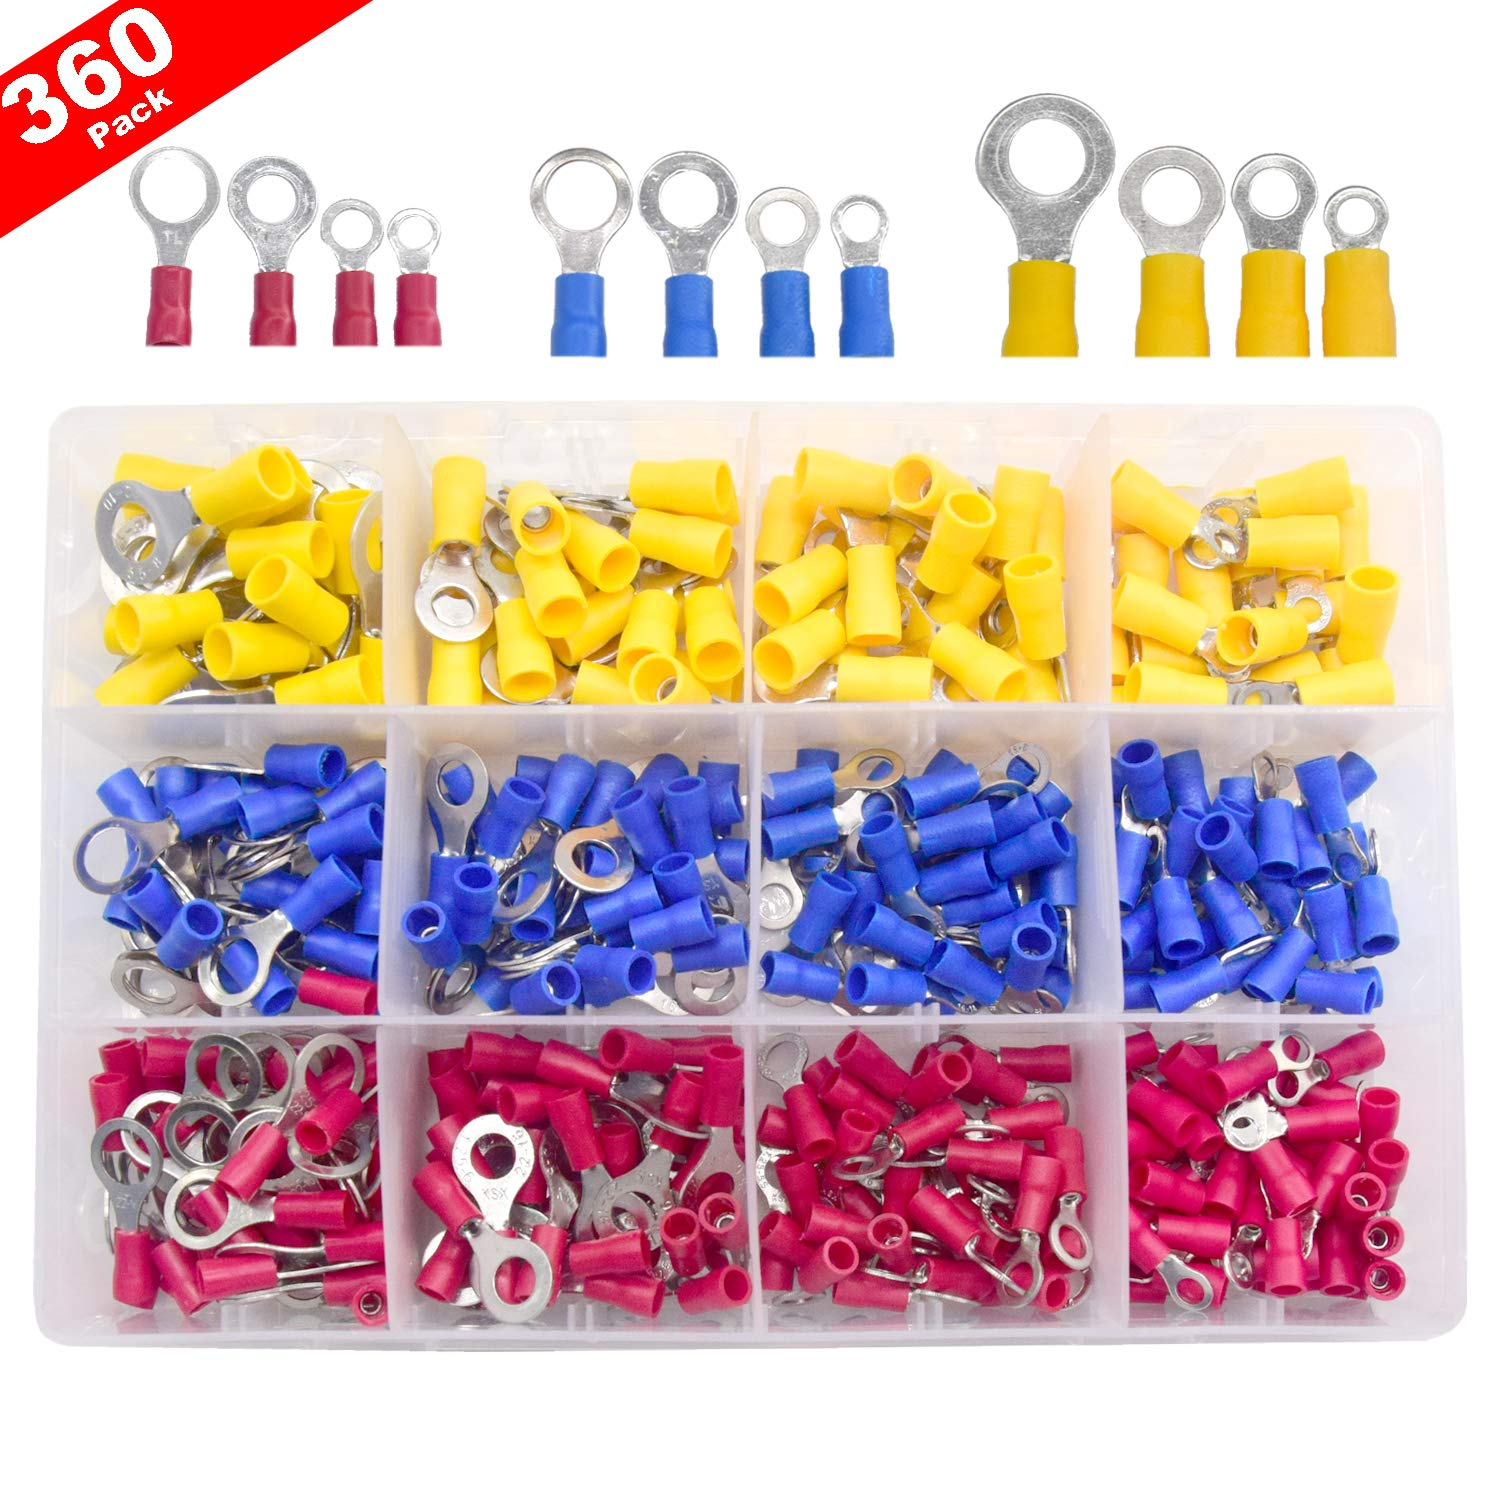 Yosawo 360-Pieces Insulated Ring Crimp Wire Connectors Terminals Kit (PVCR